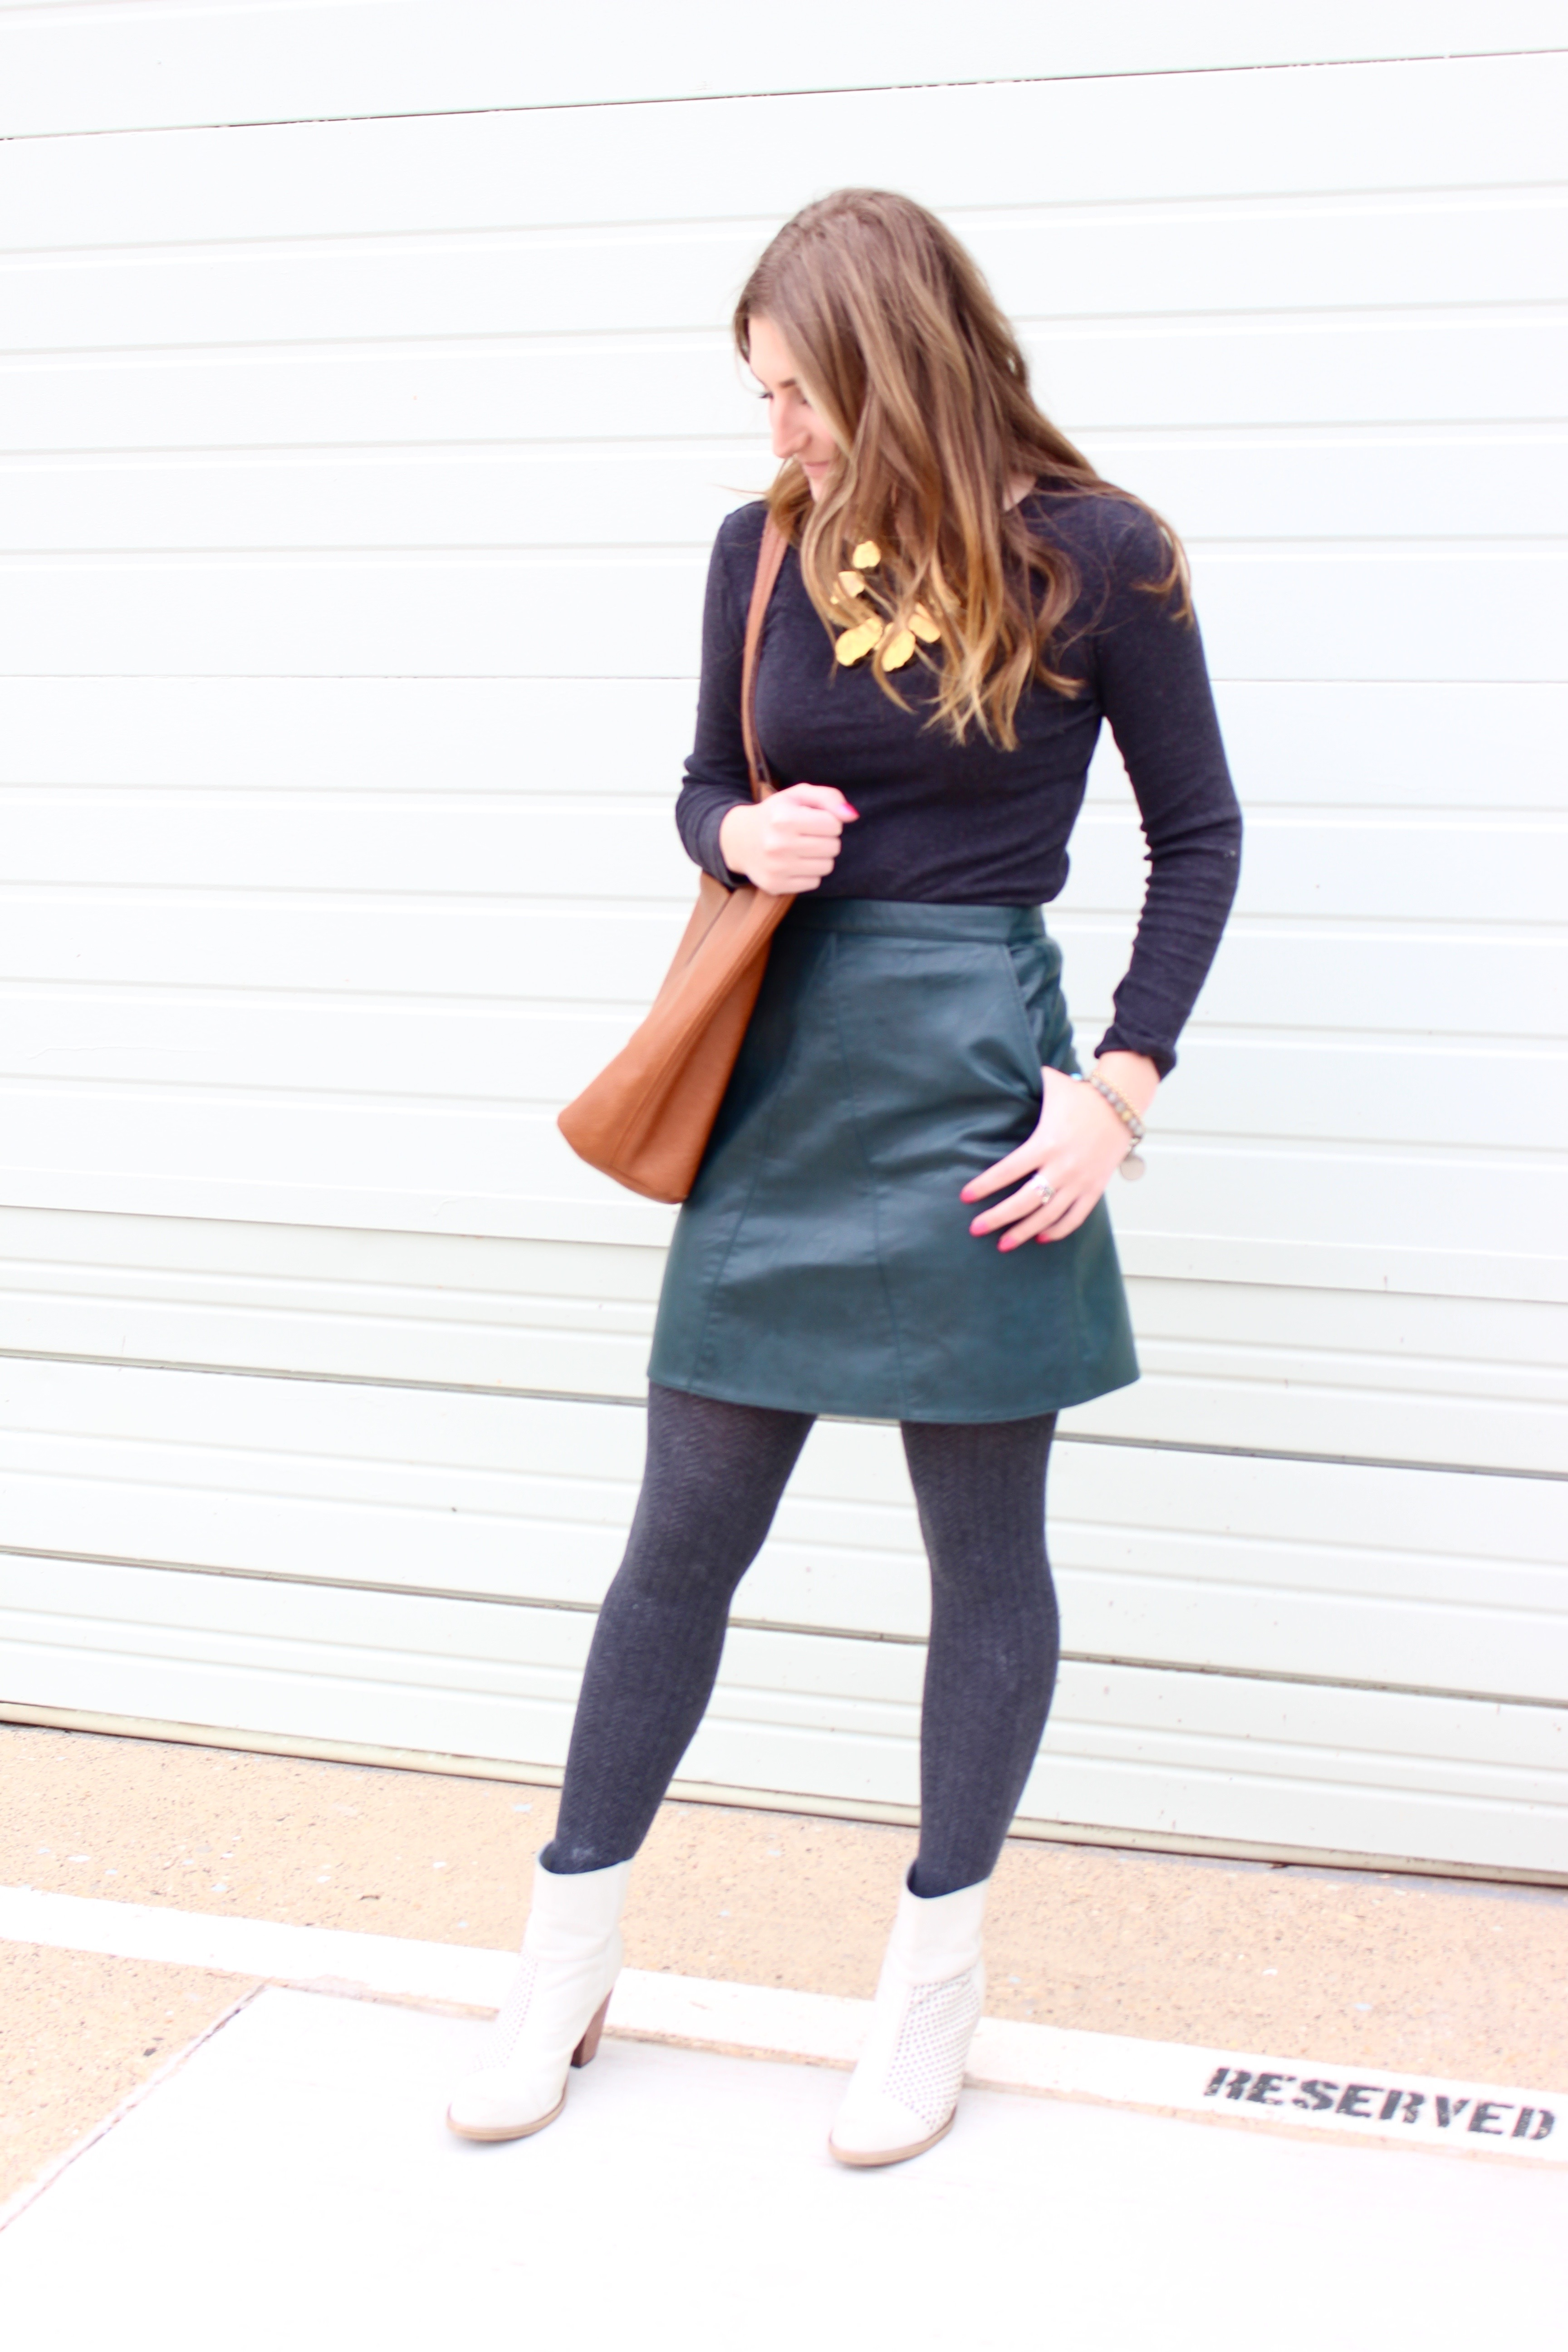 amazing quality leather skirt - Green Leather Skirt by popular Texas fashion blogger Audrey Madison Stowe